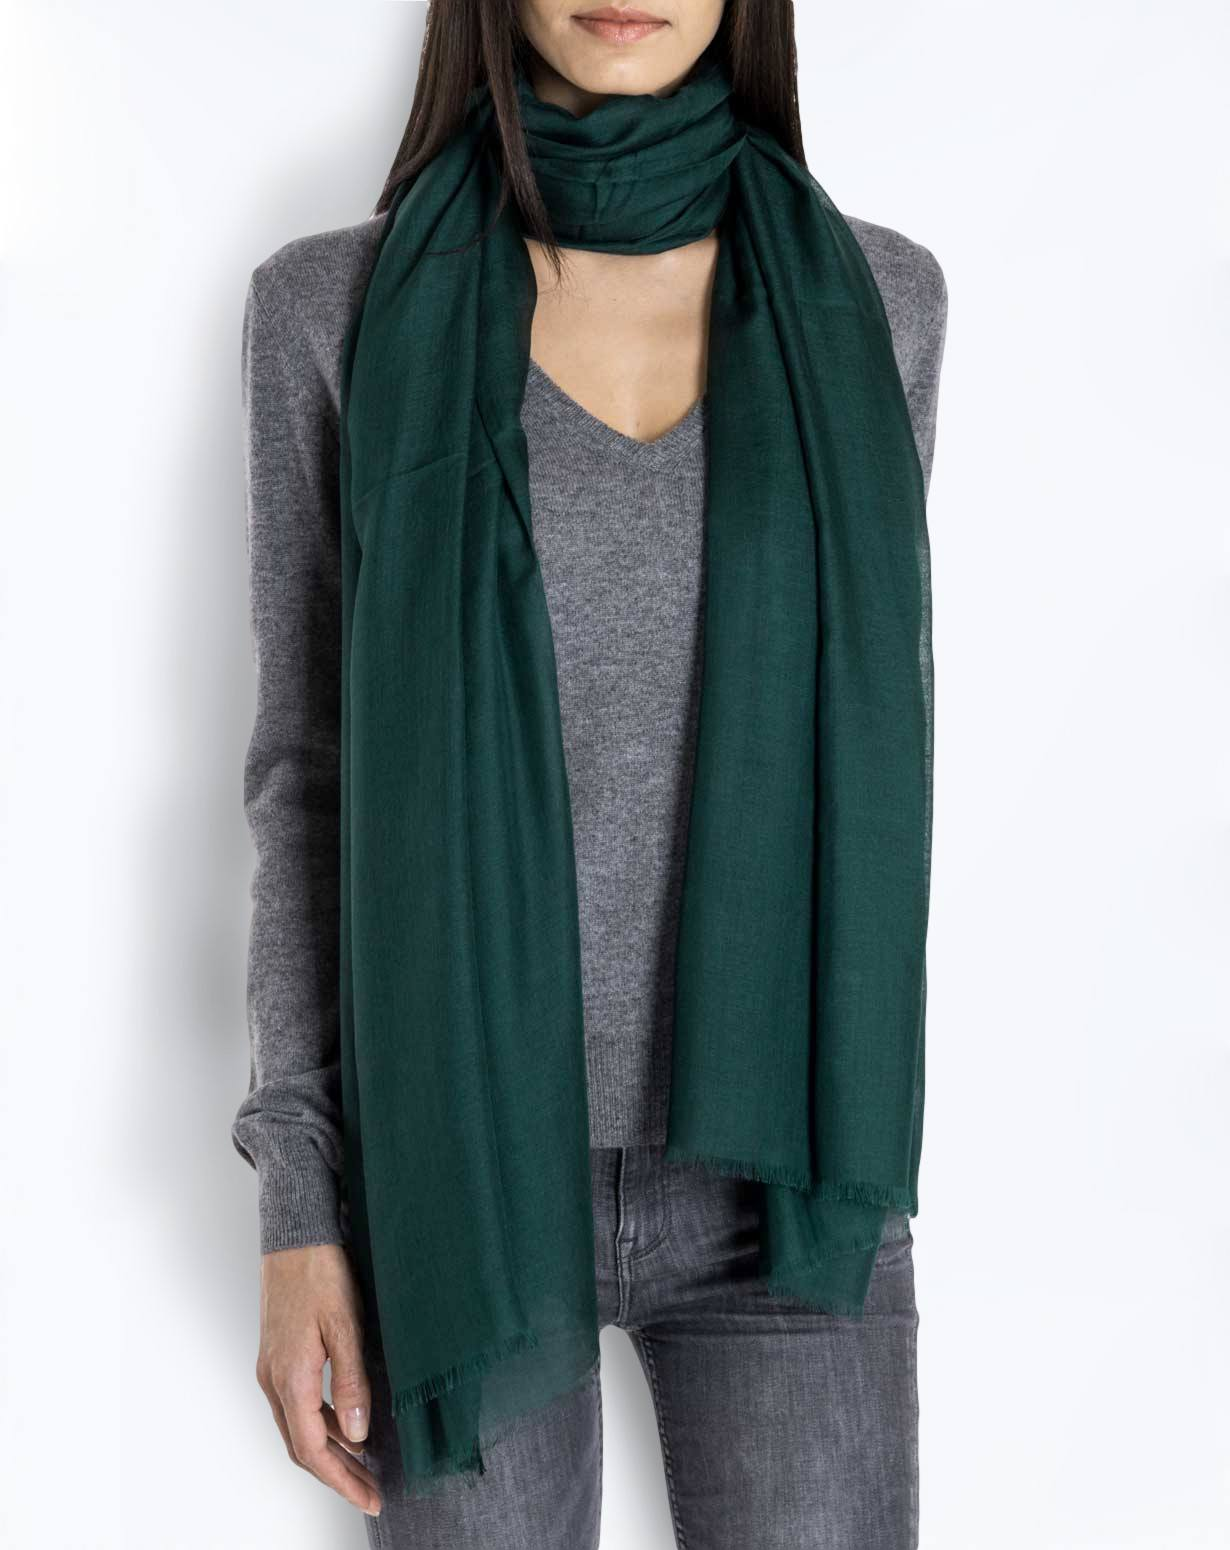 Cashmere Blend Pashmina - Forest Green